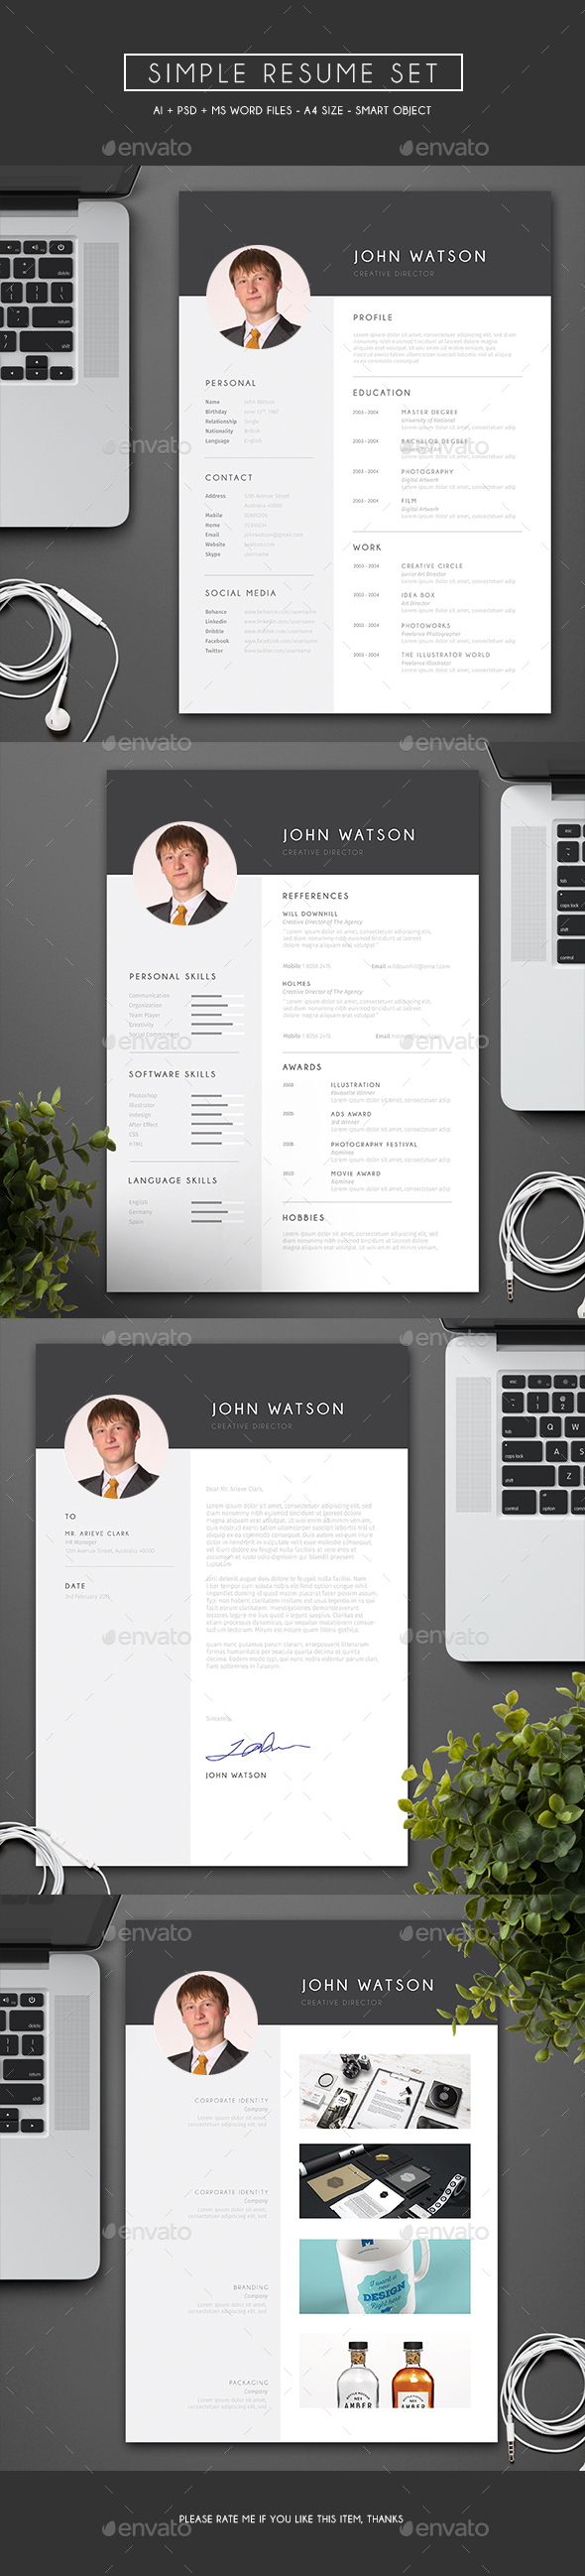 Simple Resume Set - Resumes Stationery